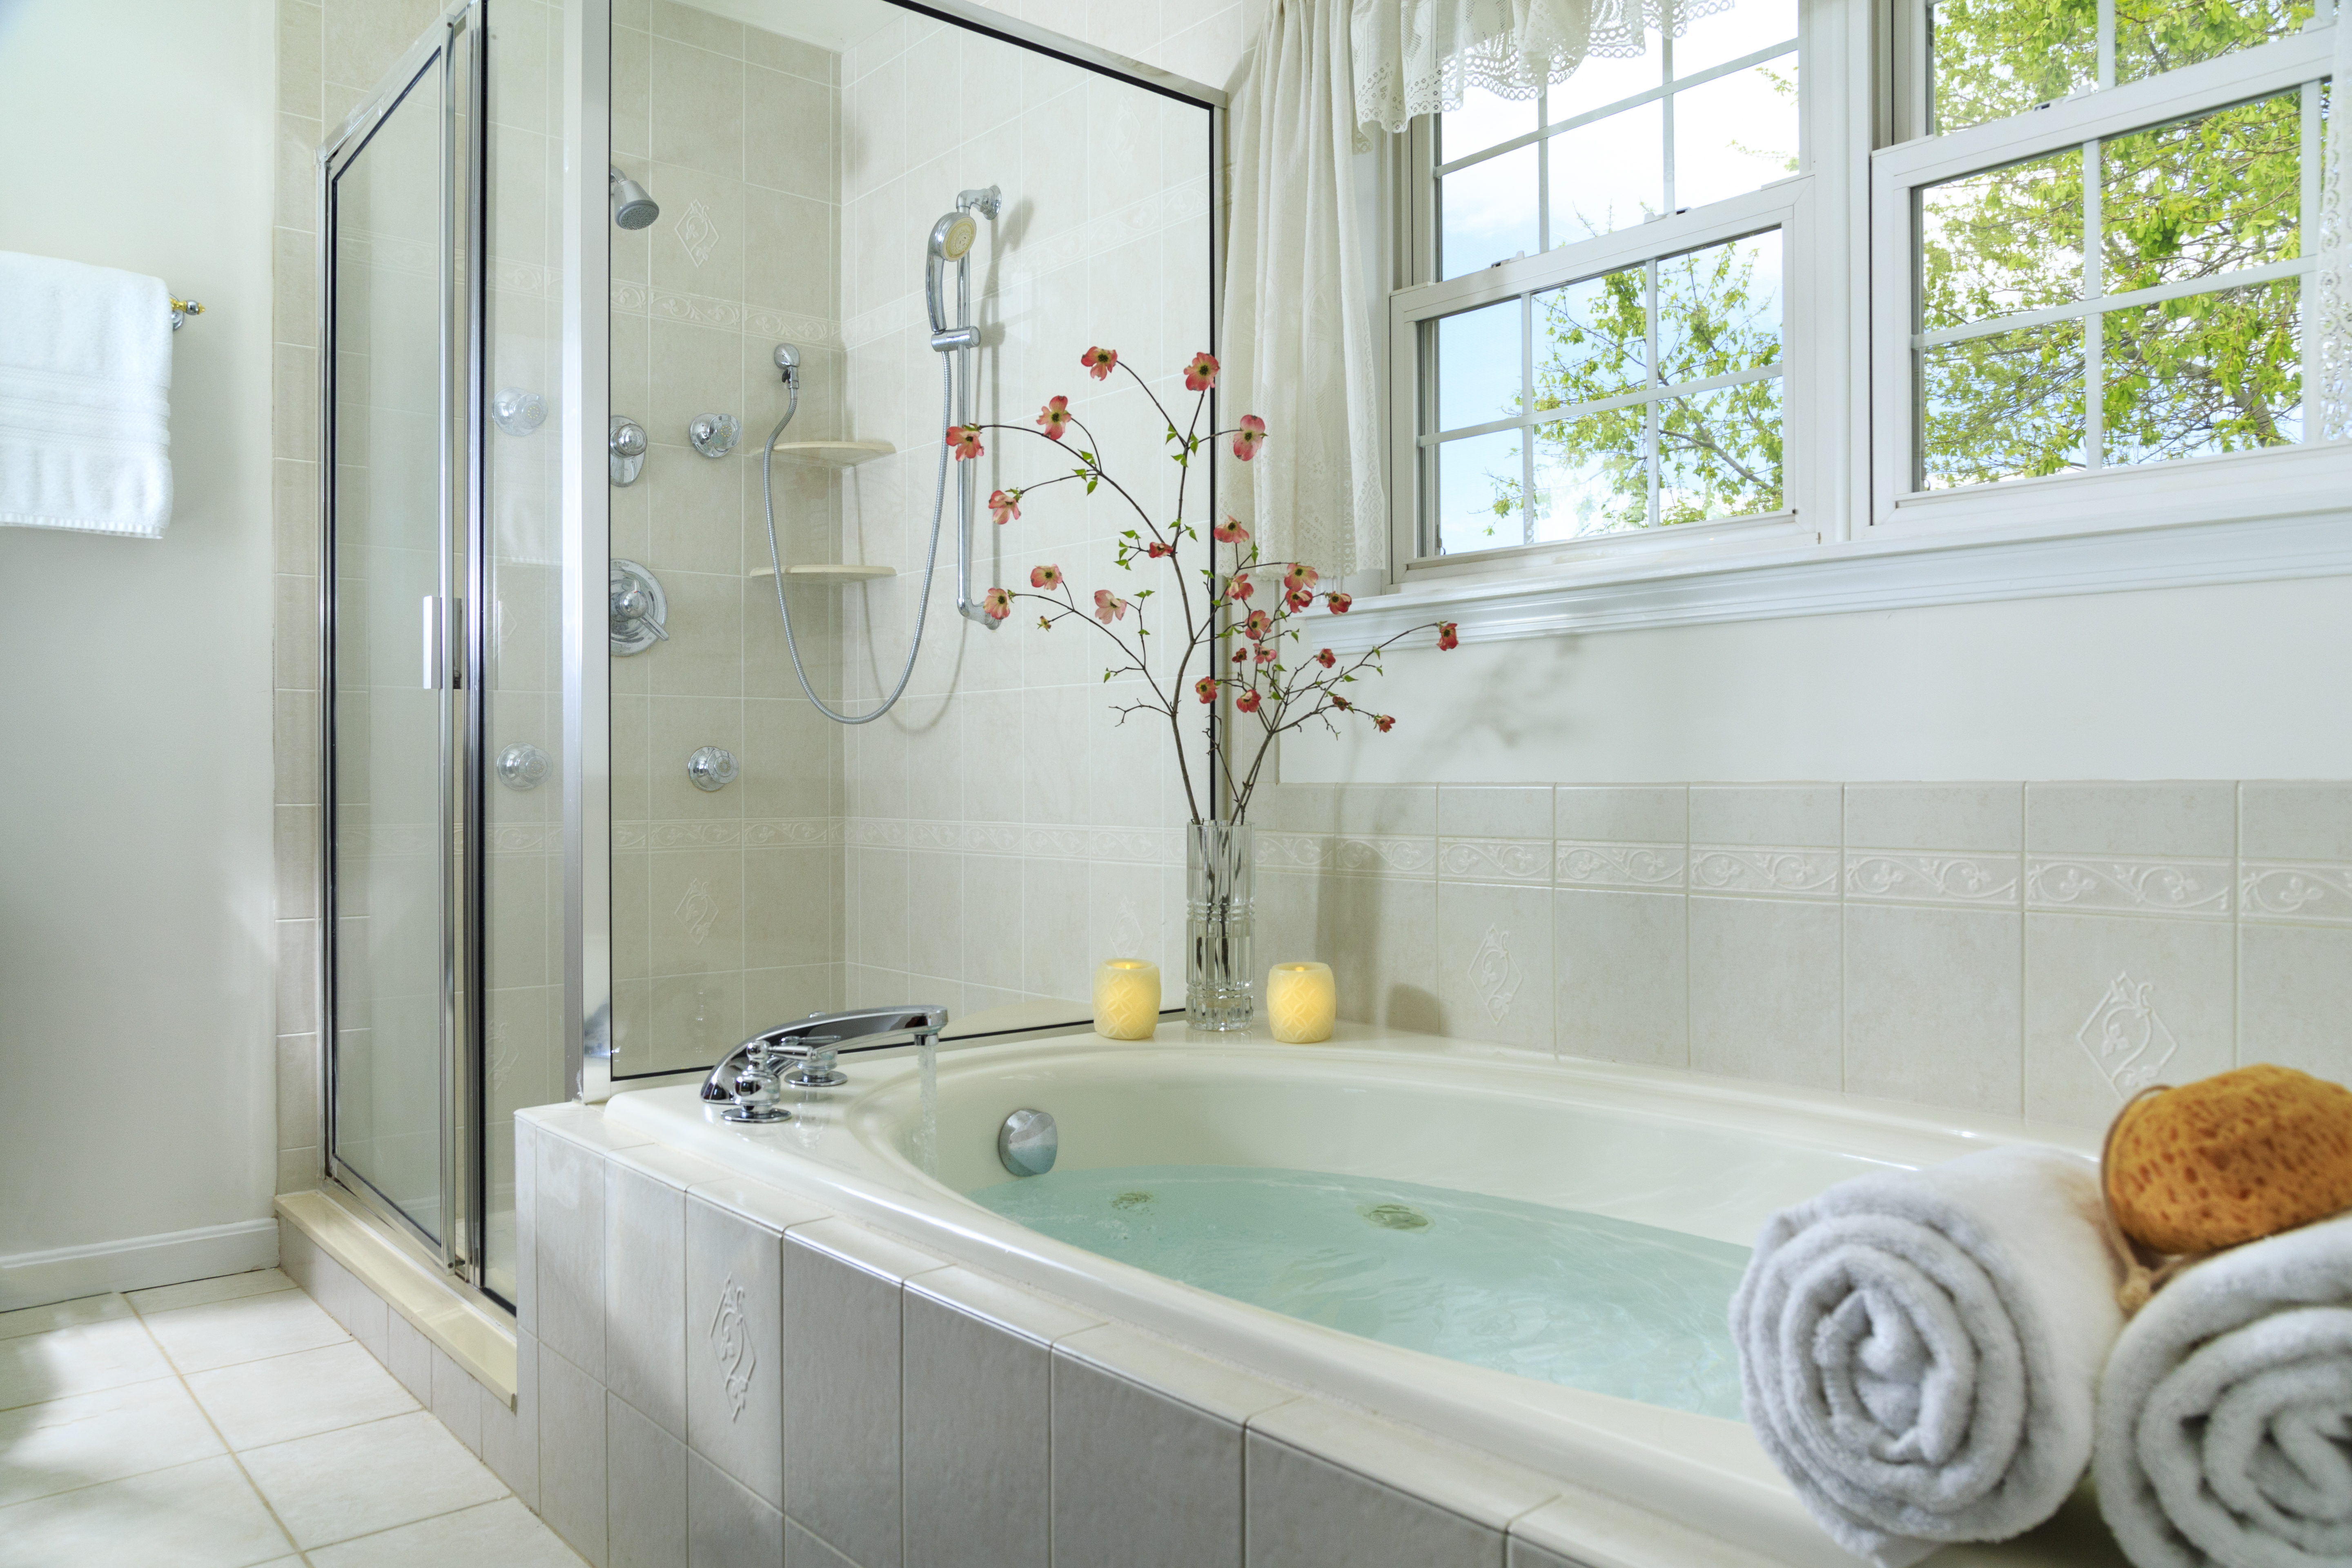 How to Fix a Whirlpool Tub That Does Not Have an Access Panel